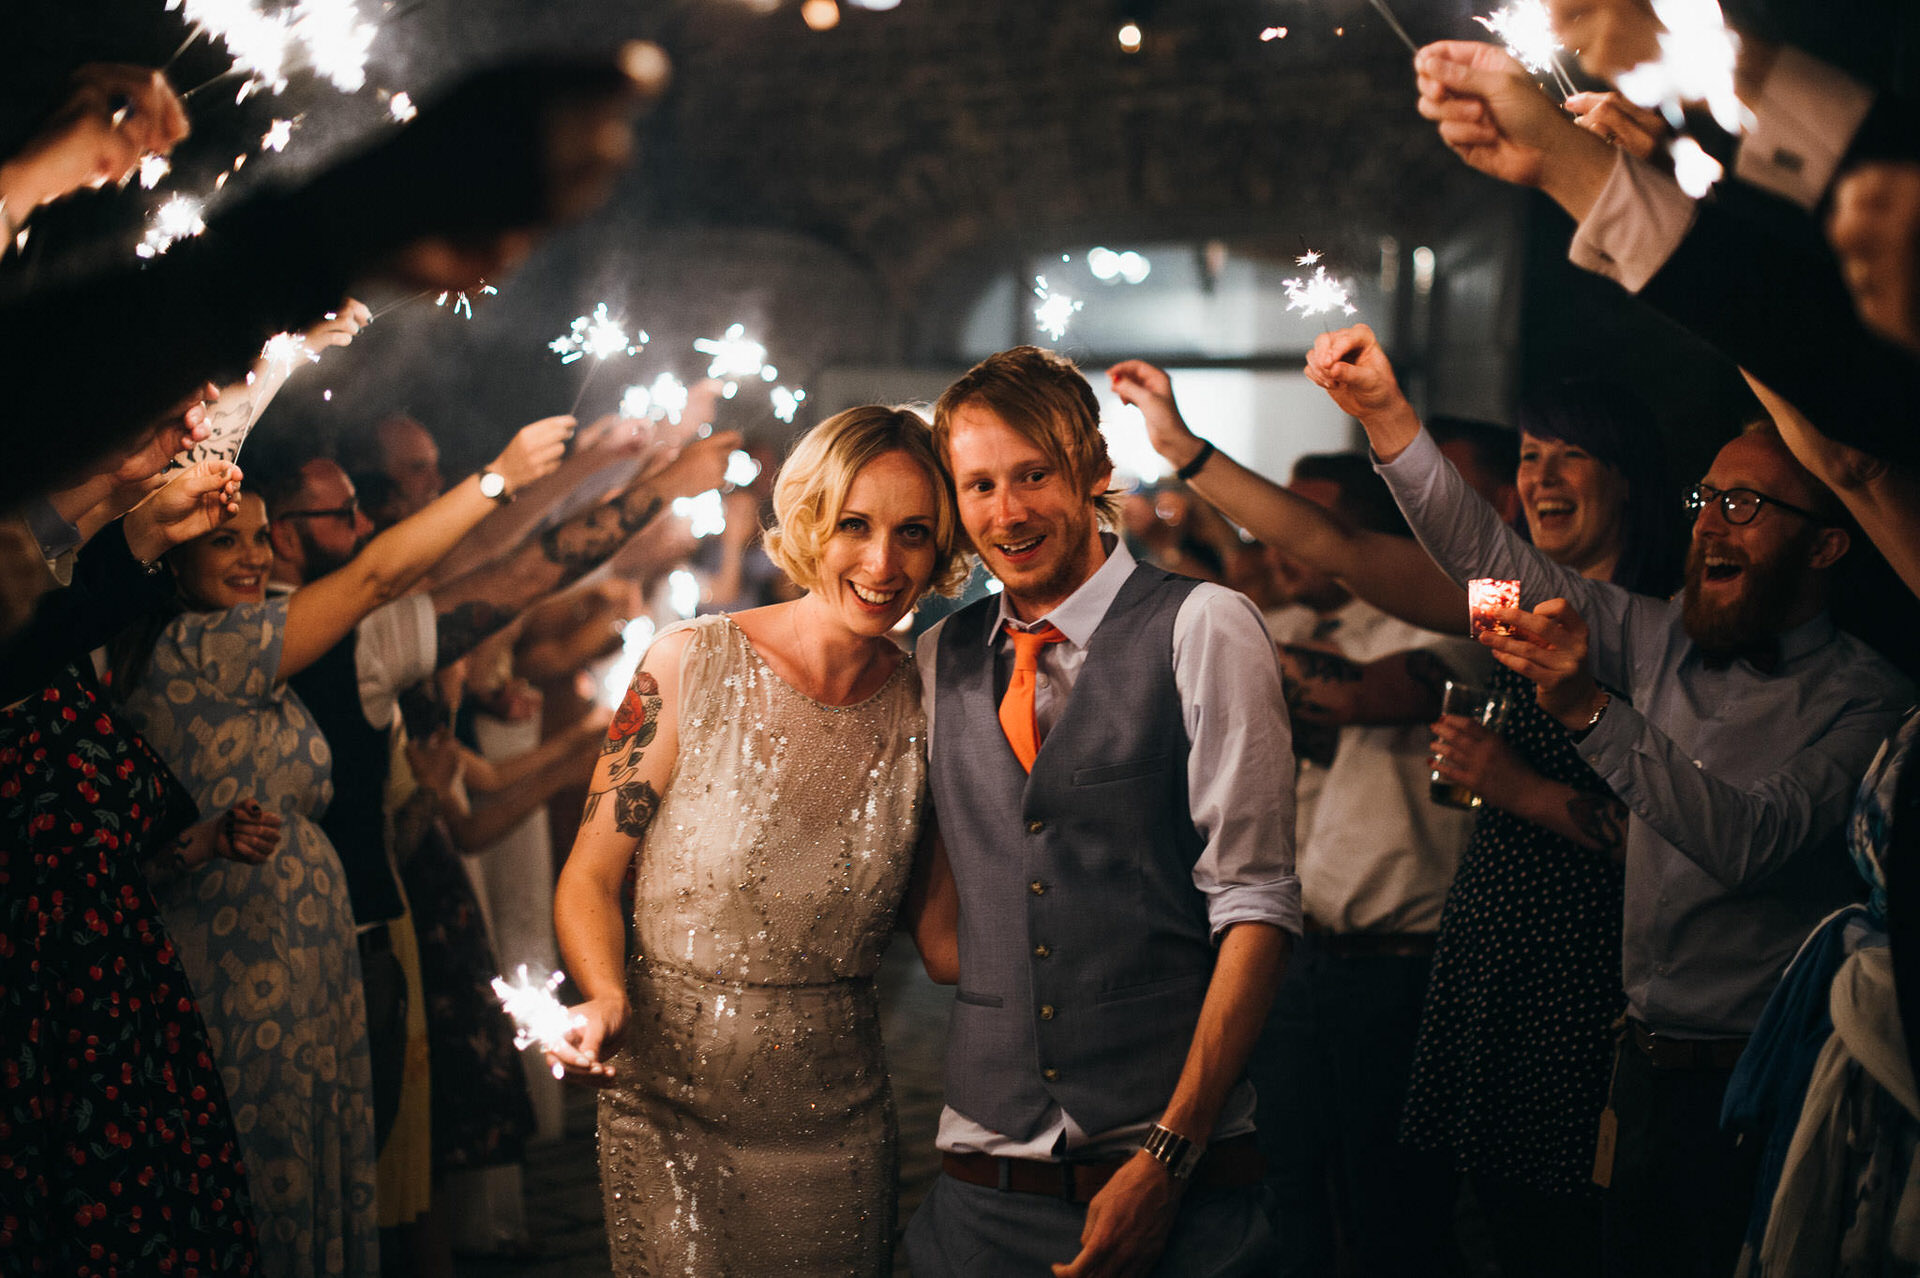 Pennard house wedding photography sparklers